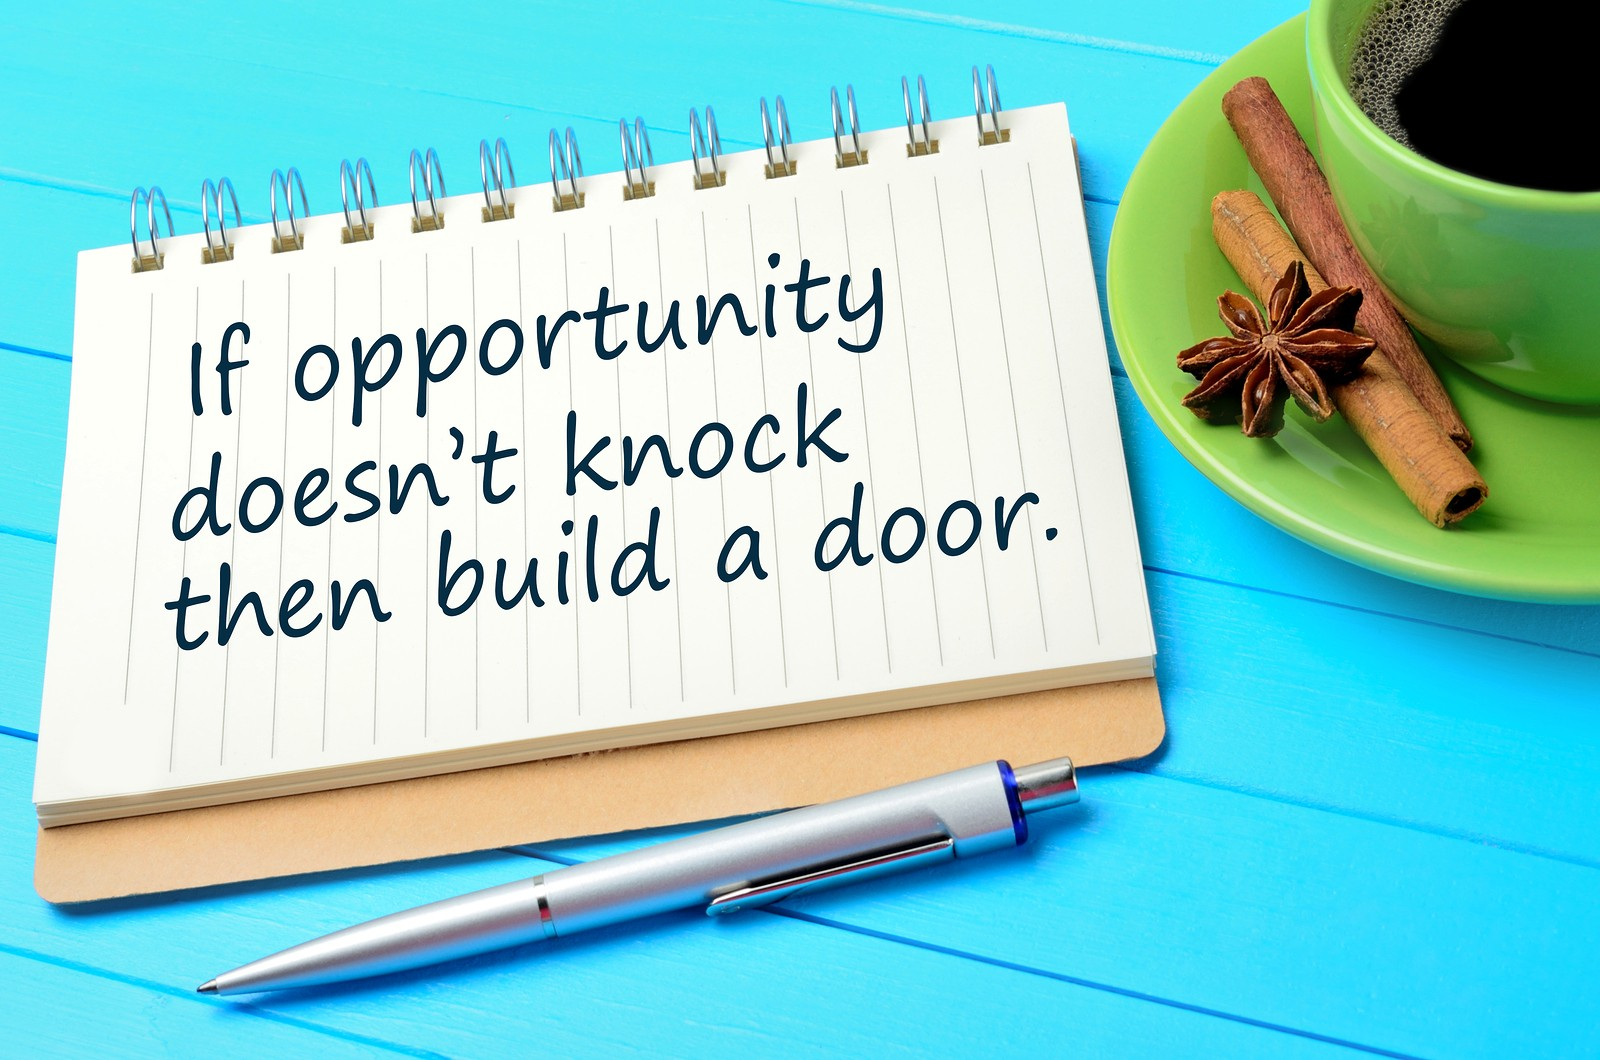 if opportunity doesn't knock then build a door